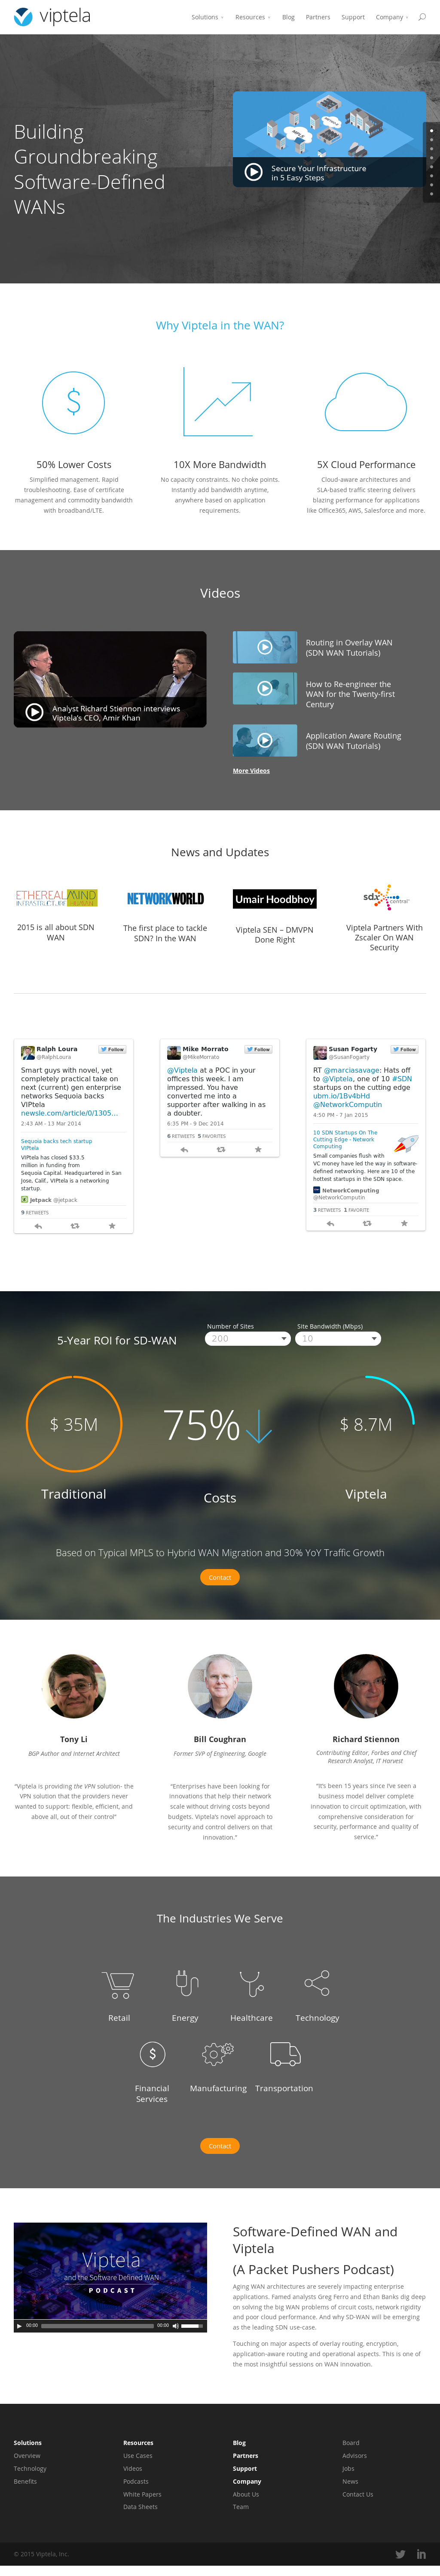 Viptela Competitors, Revenue and Employees - Owler Company Profile